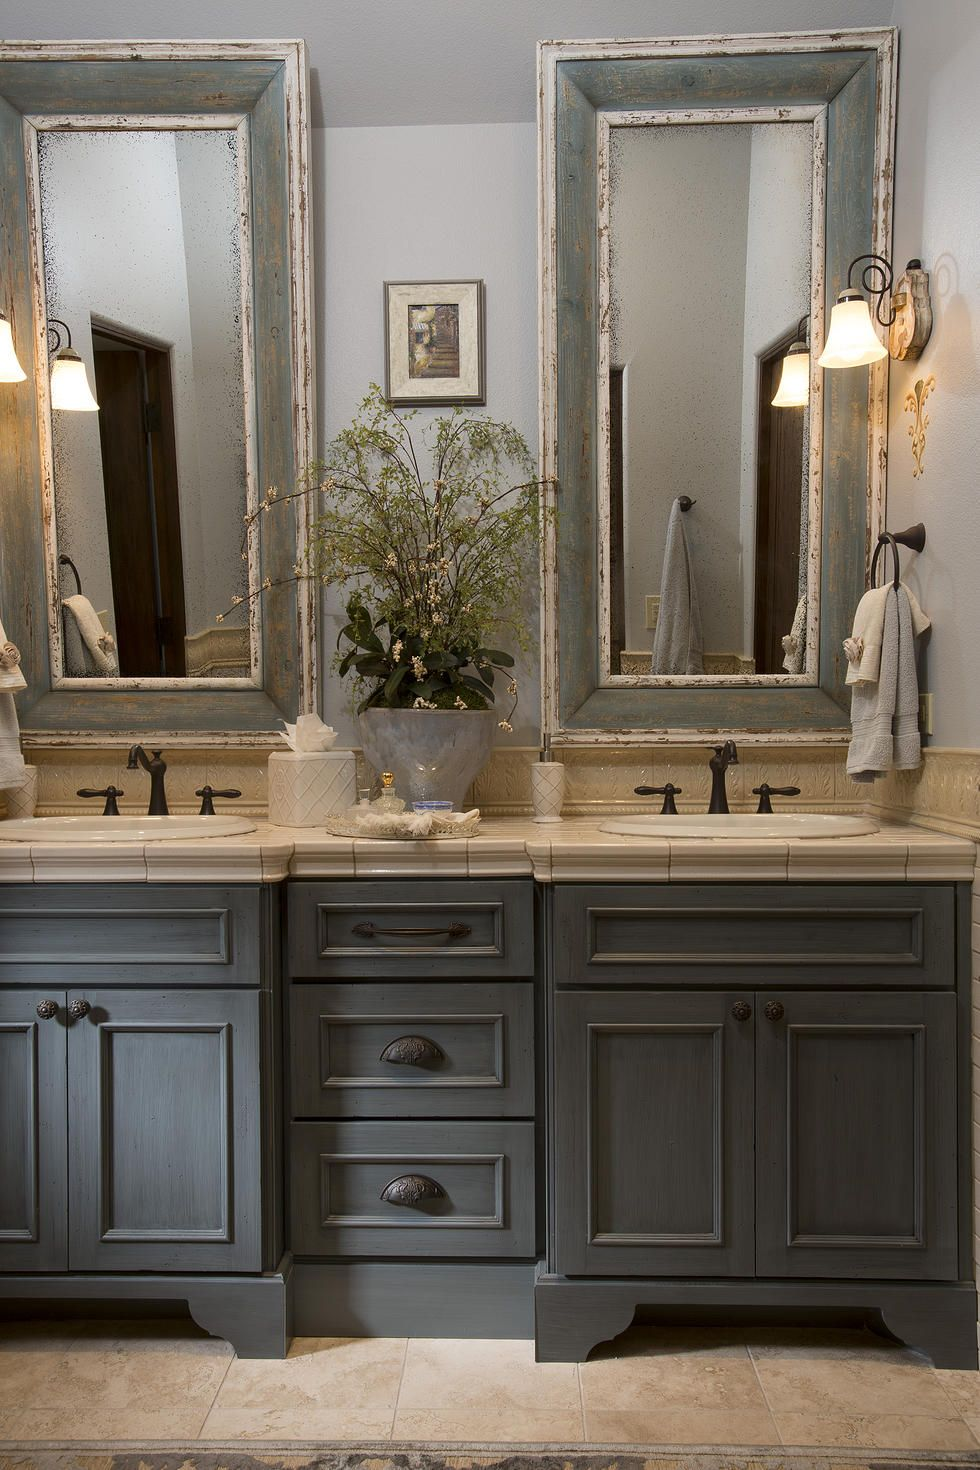 French Country Bathroom Gray Washed Cabinets Mirrors With